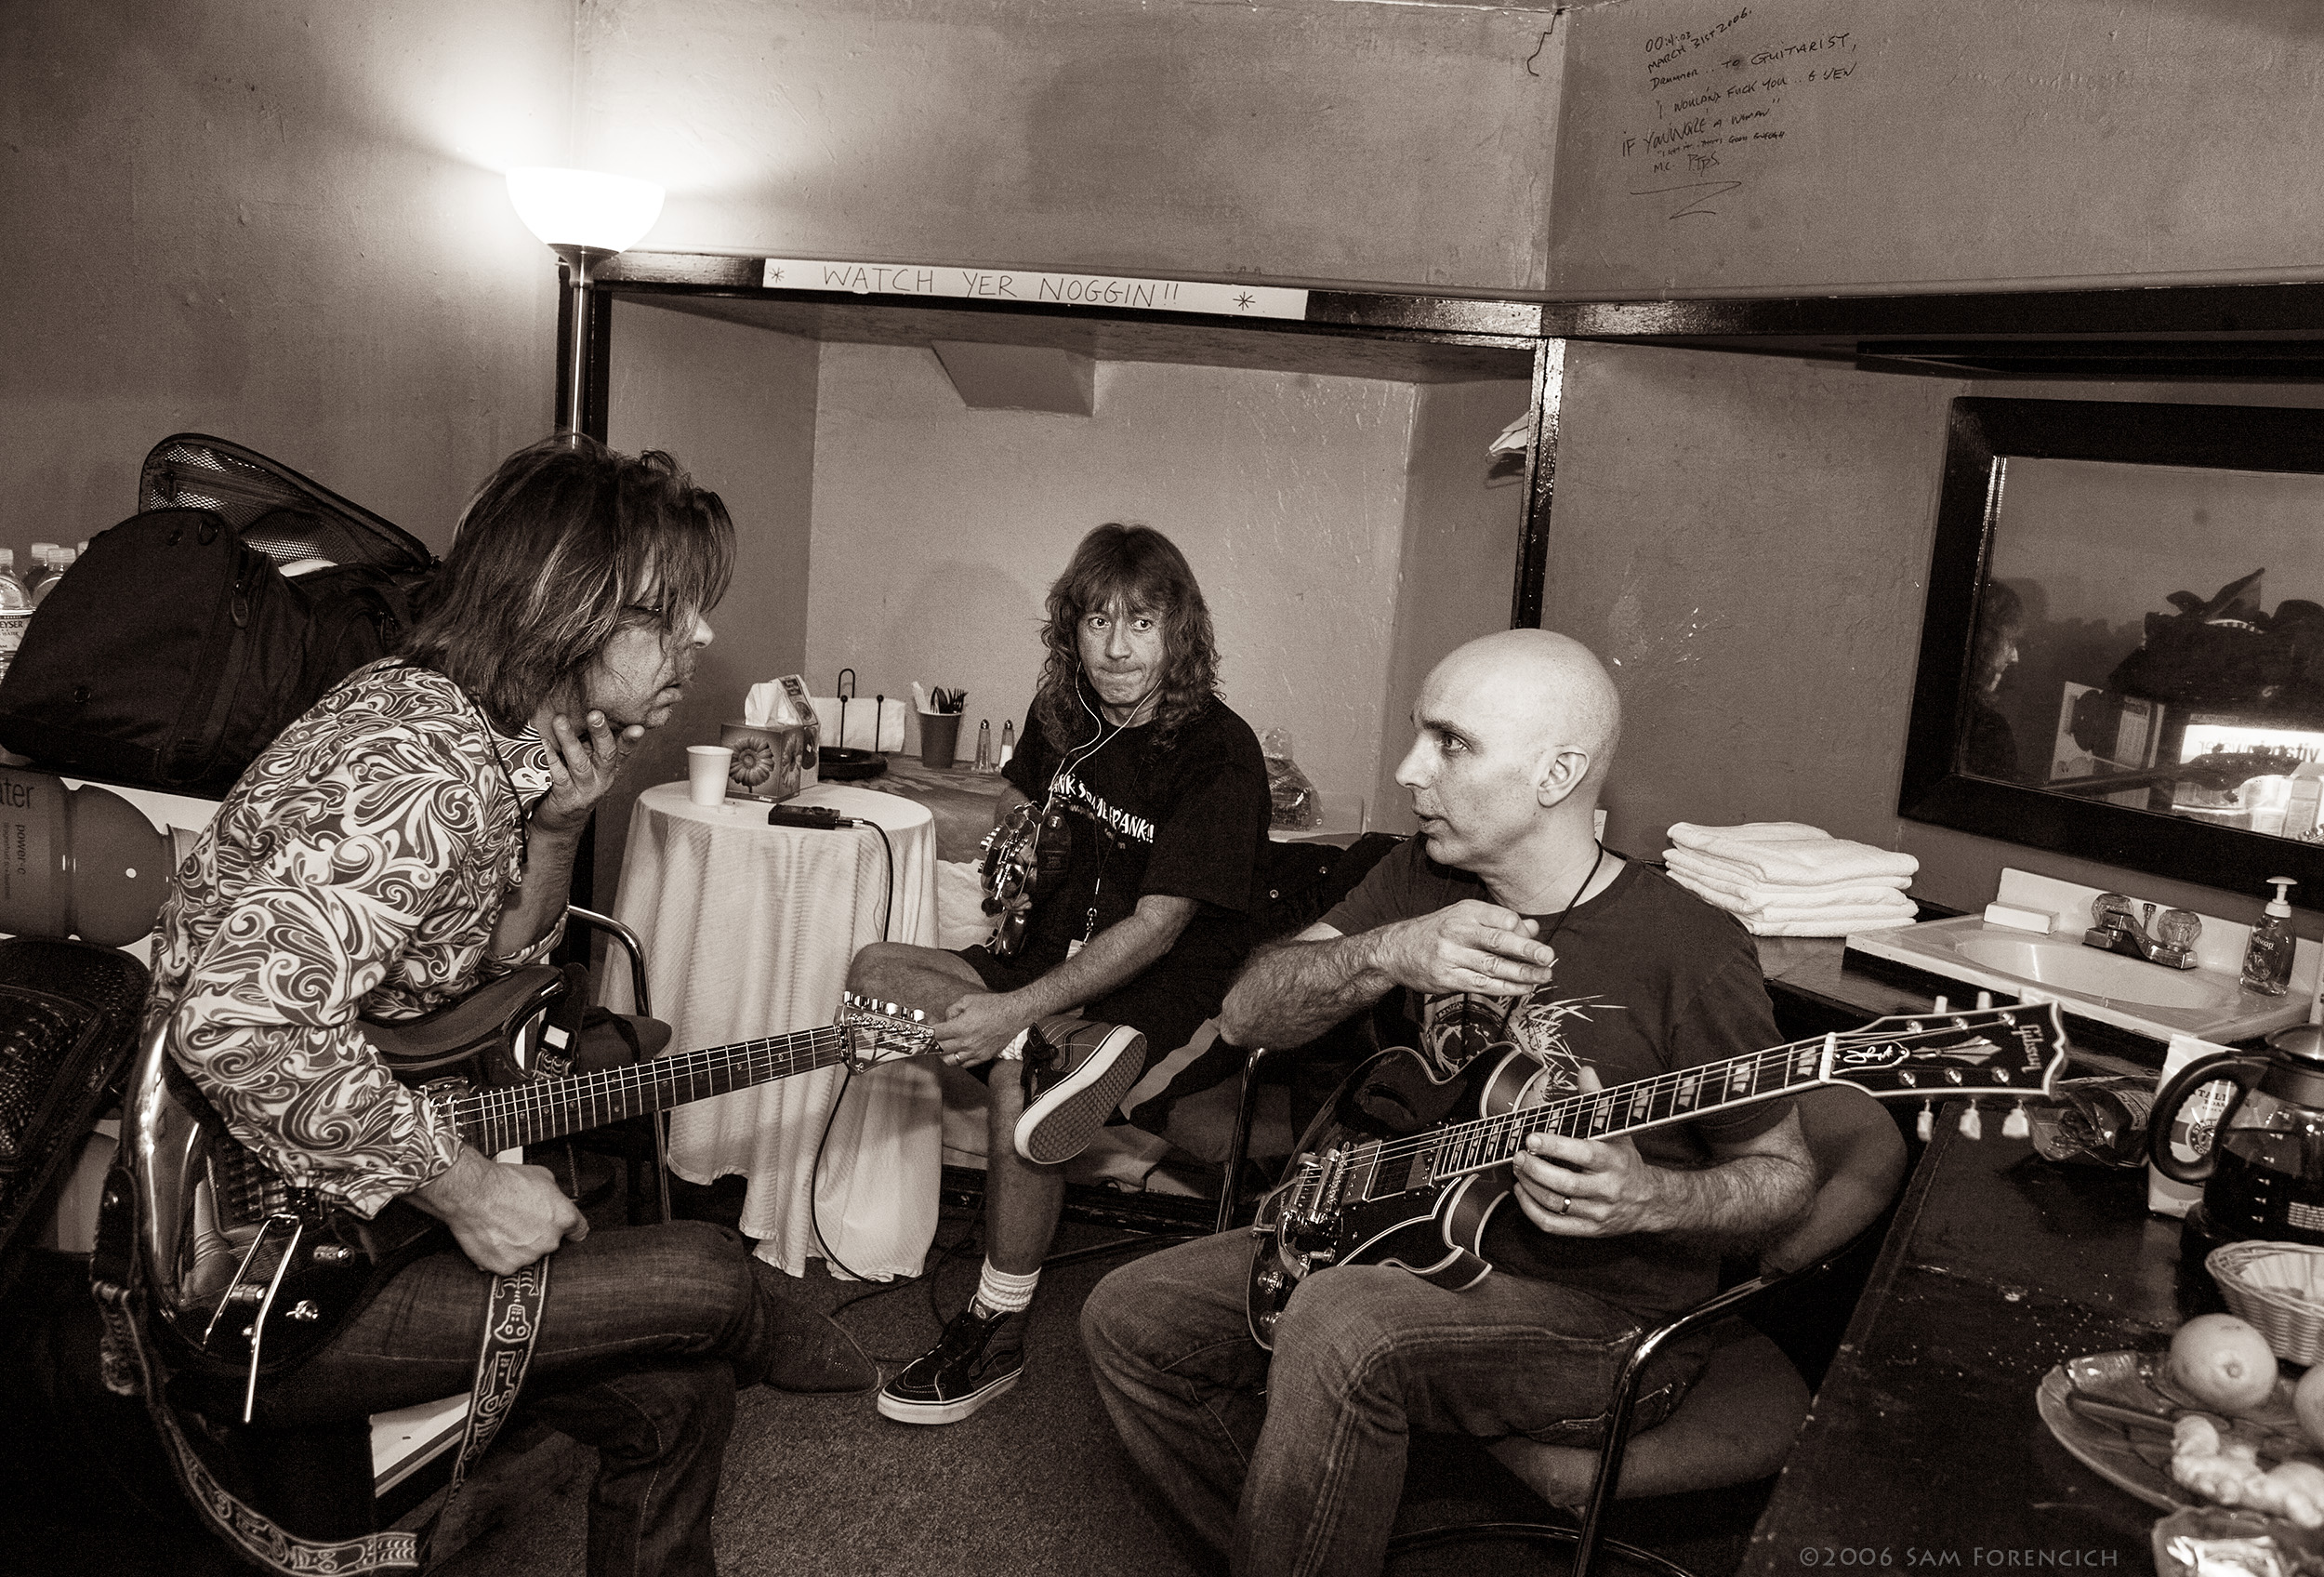 May 2006,San Francisco, California - Joe Satriani,guest Jonny A. and bassist Dave LaRue discuss their upcoming performance backstage at the Warfield Theater - 2006 Super Colossal Tour ©2006 Sam Forencich